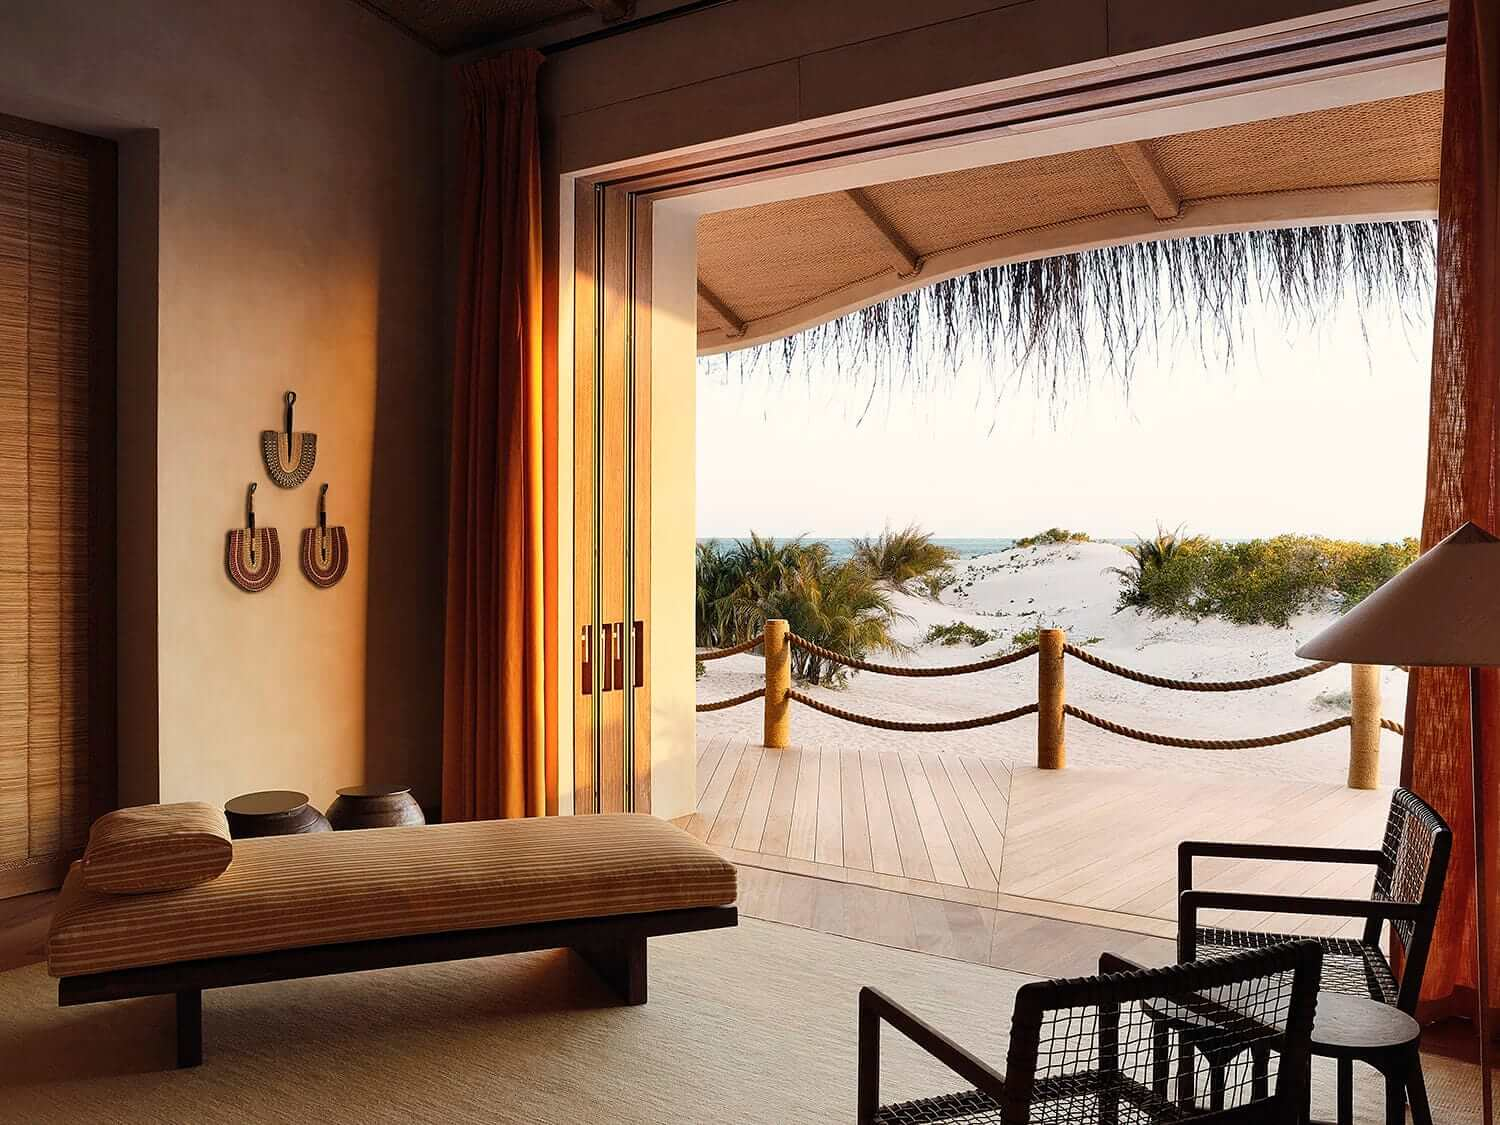 Looking out from a luxury suite to the sand dunes and ocean outside at Kisawa Sanctuary, Mozambique. Photo by Elsa Young.